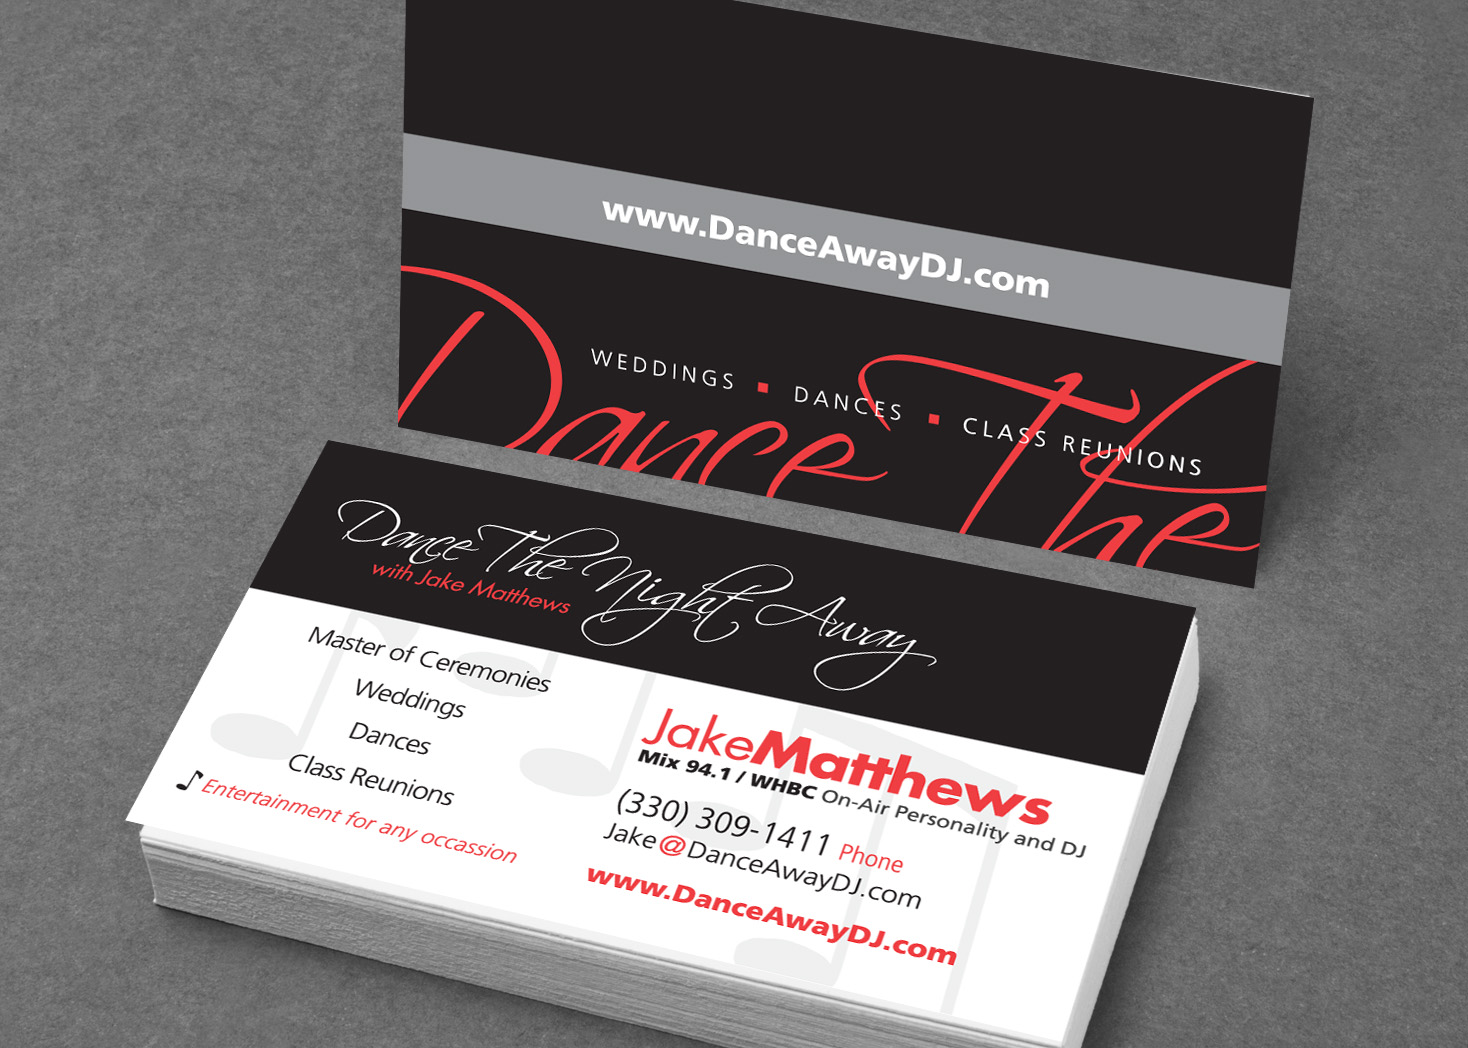 Dance Away Dj – Business Card Design Les Lehman Website Design and ...